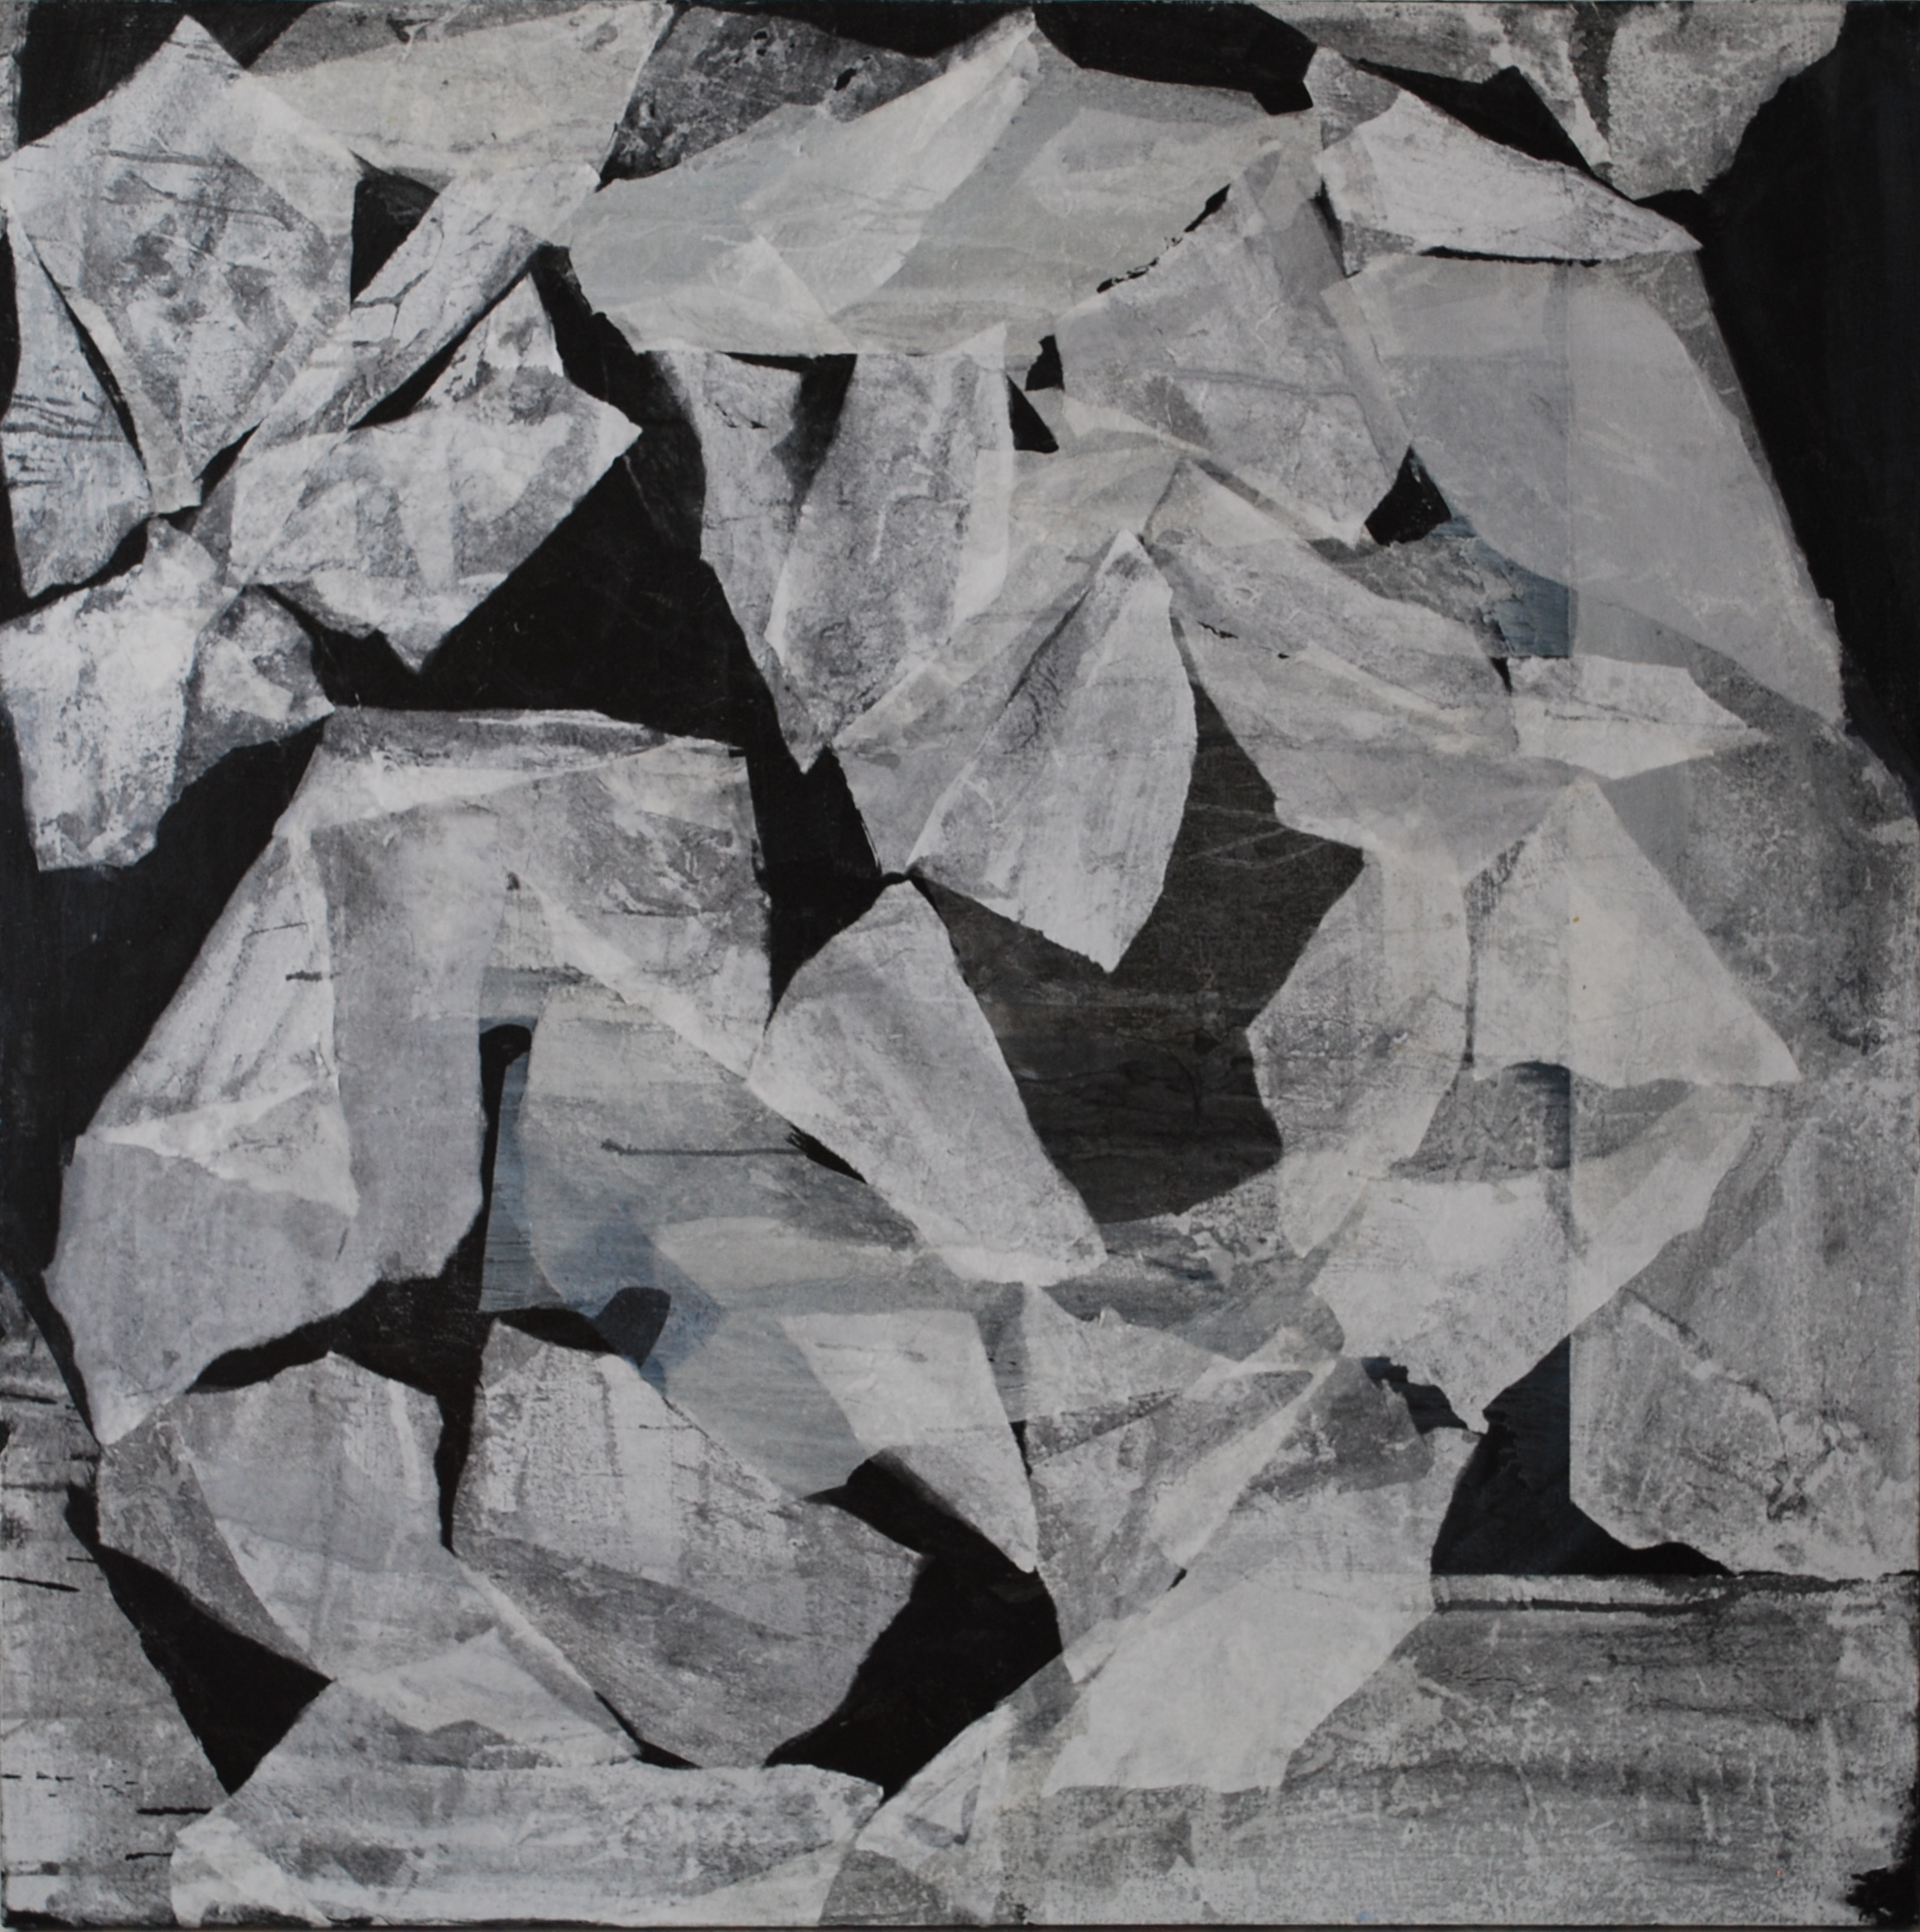 SoHyun Bae, Wrapped Shards #2, 2002, rice-paper and pure pigment on canvas, 60 x 60 inches